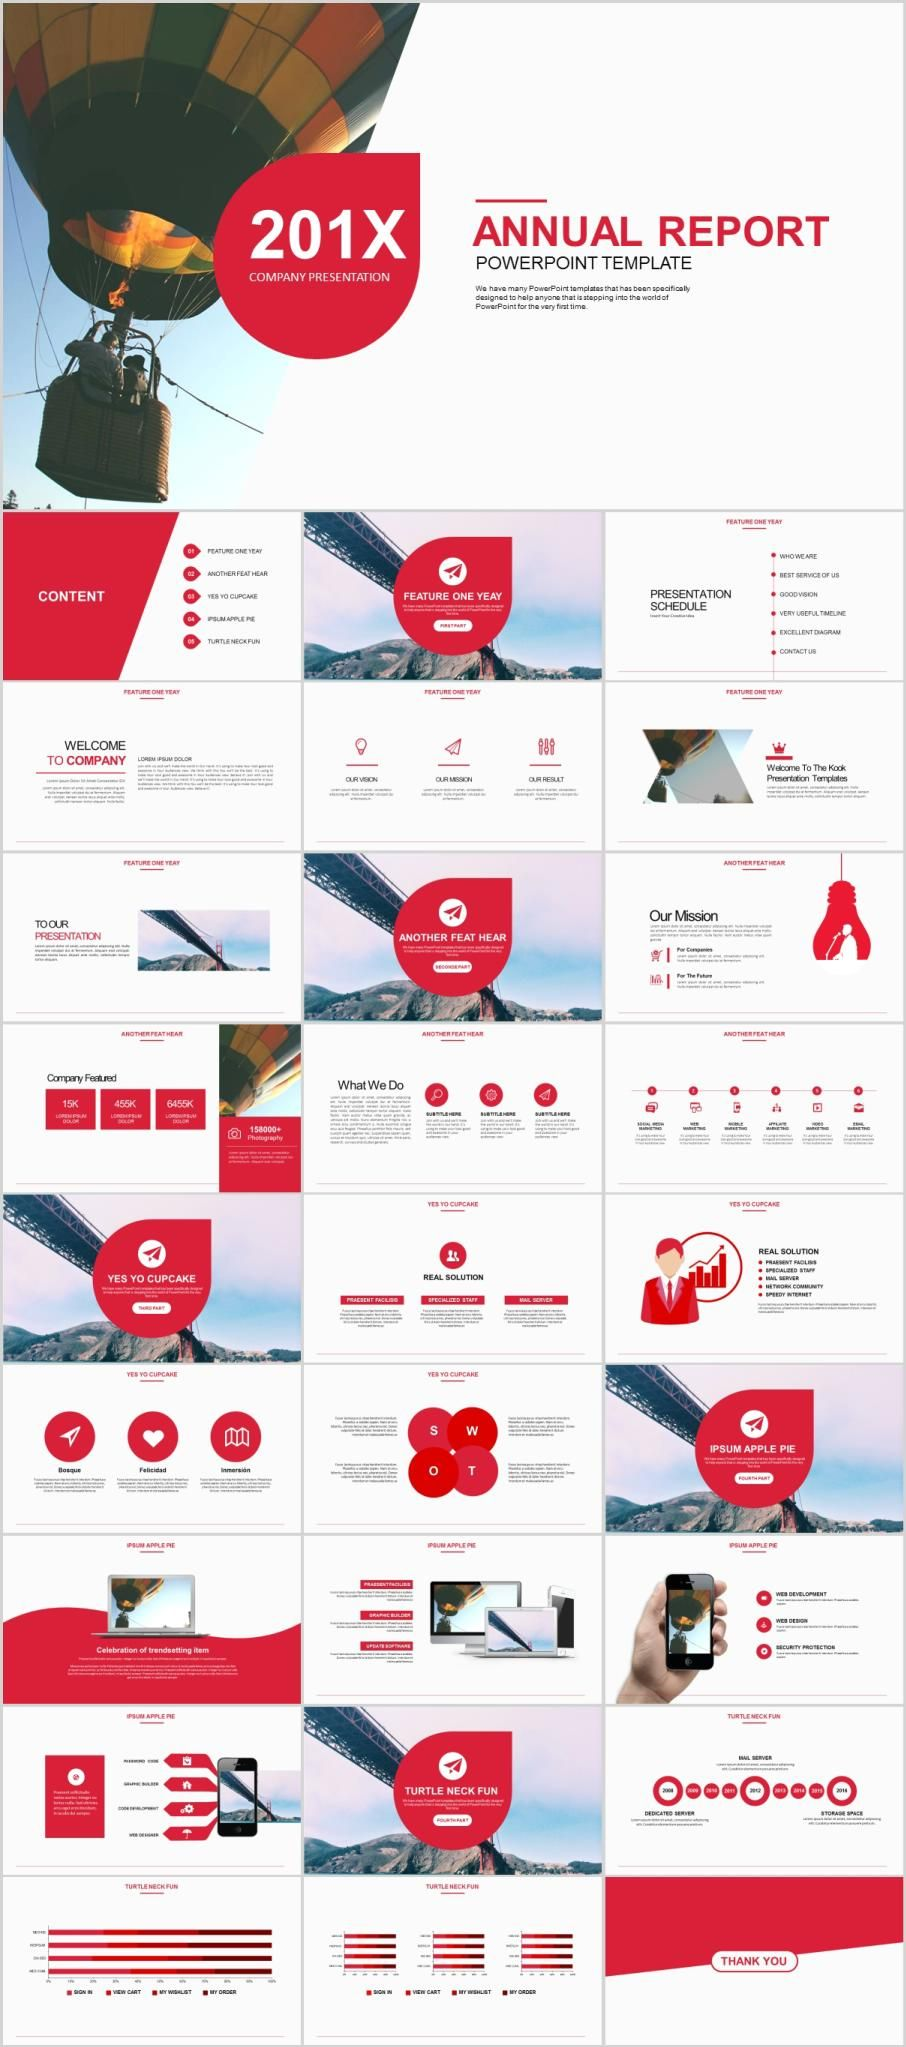 28 red annual report powerpoint templates marketing kit theme